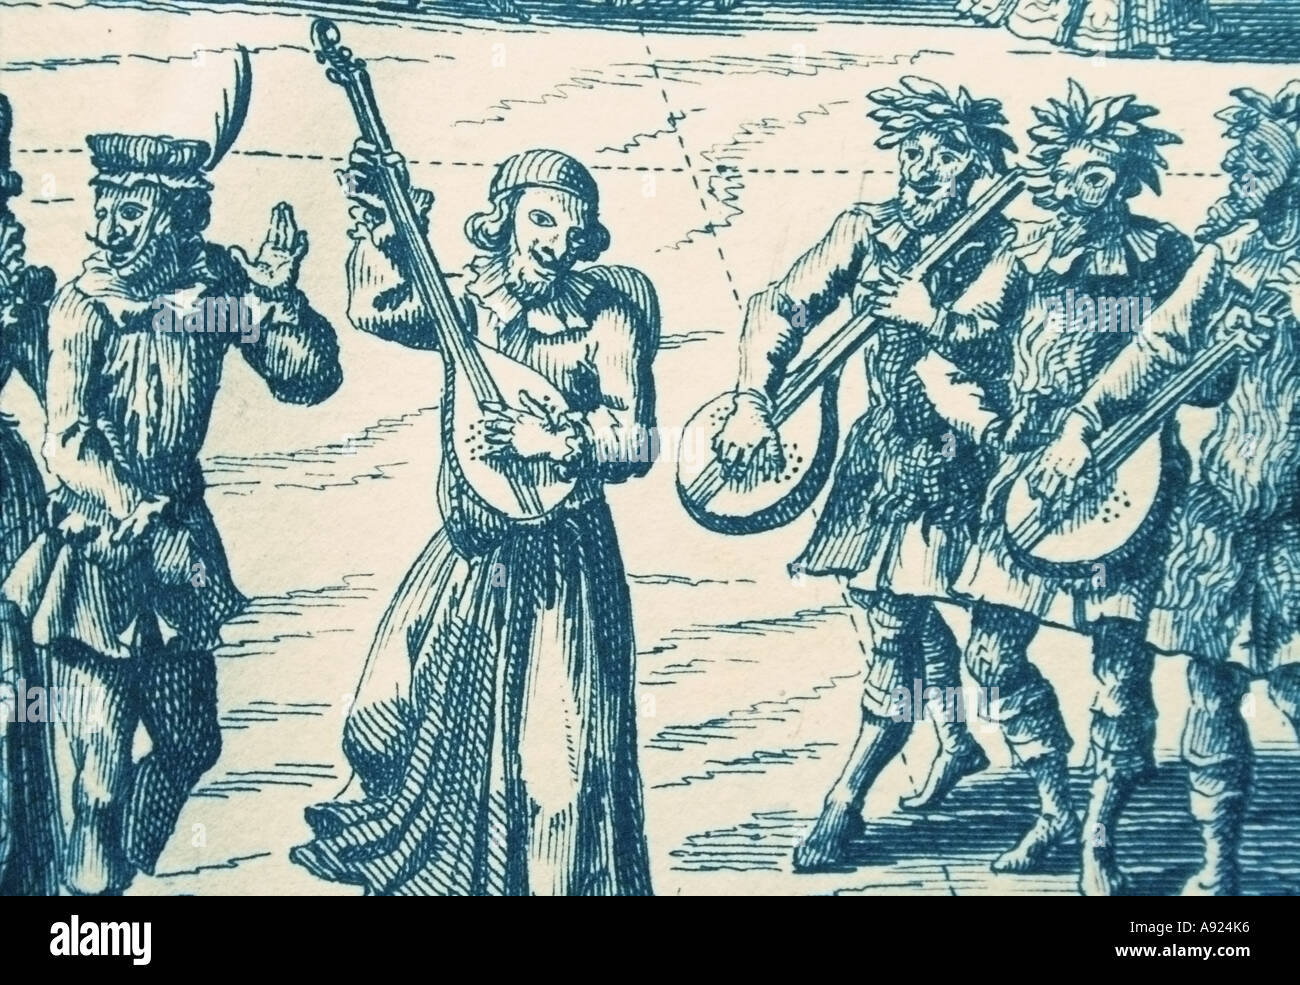 Musicians celebrating Carnival in Venice, from an 18th-century Dutch engraving - Stock Image